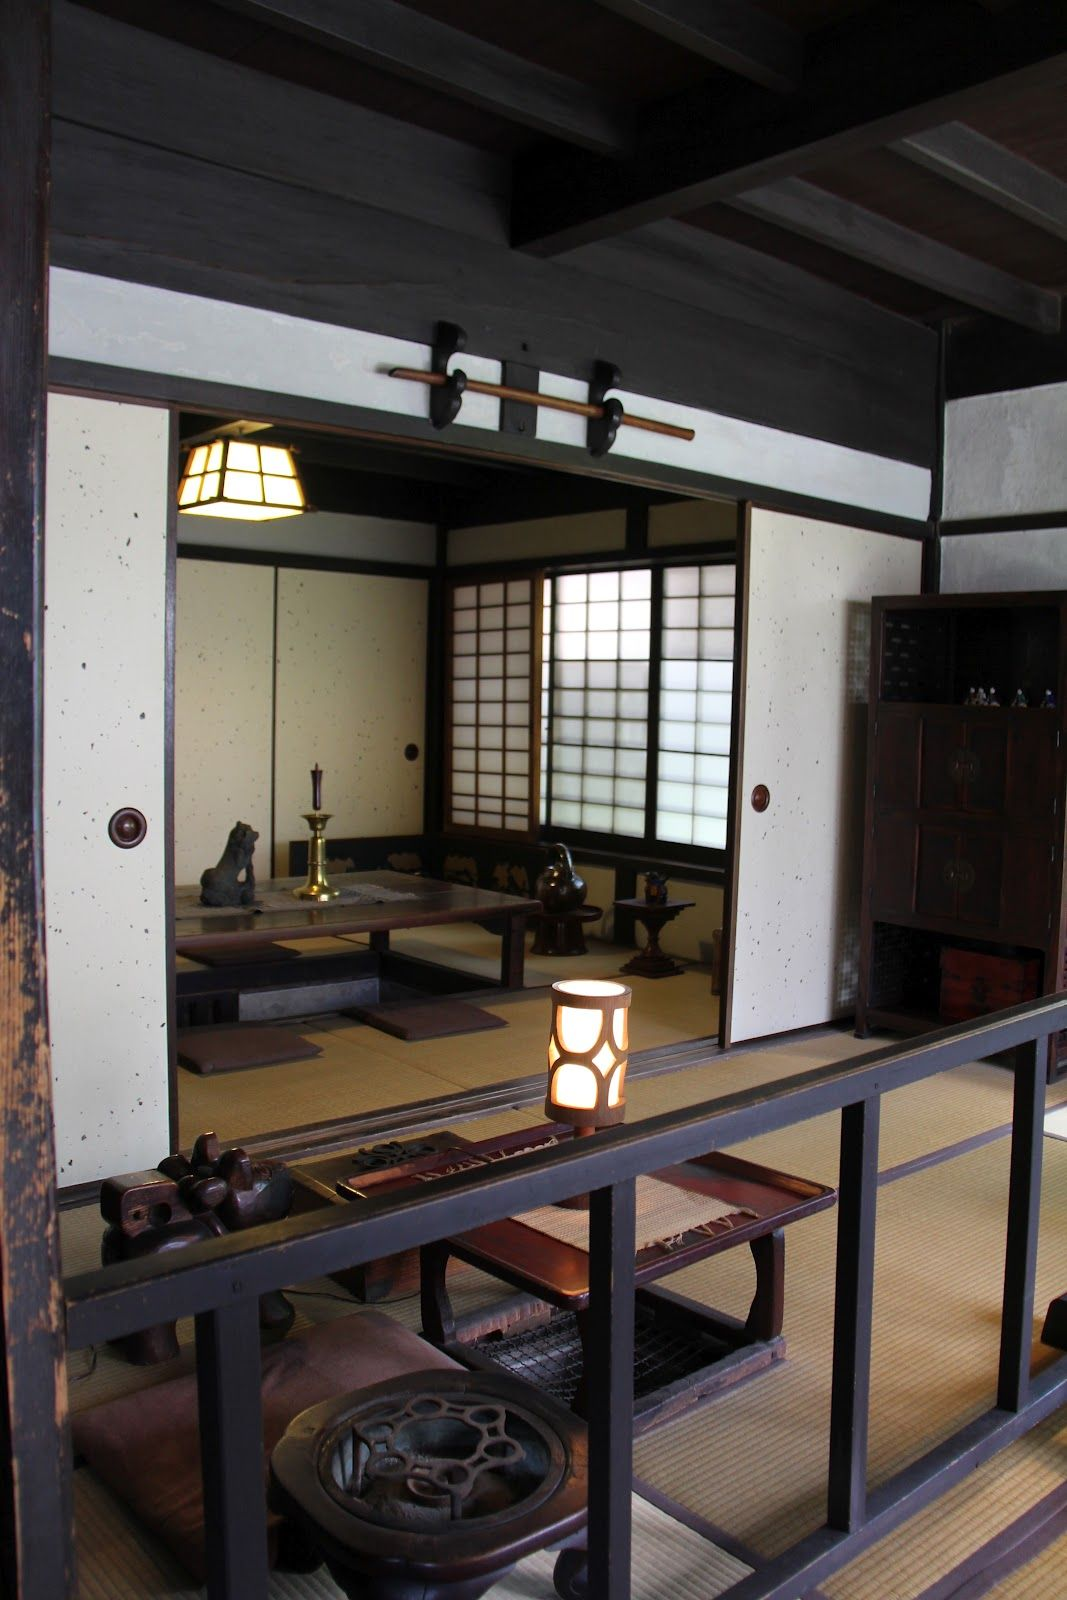 10 Kitchen And Home Decor Items Every 20 Something Needs: Japanese Interior Style